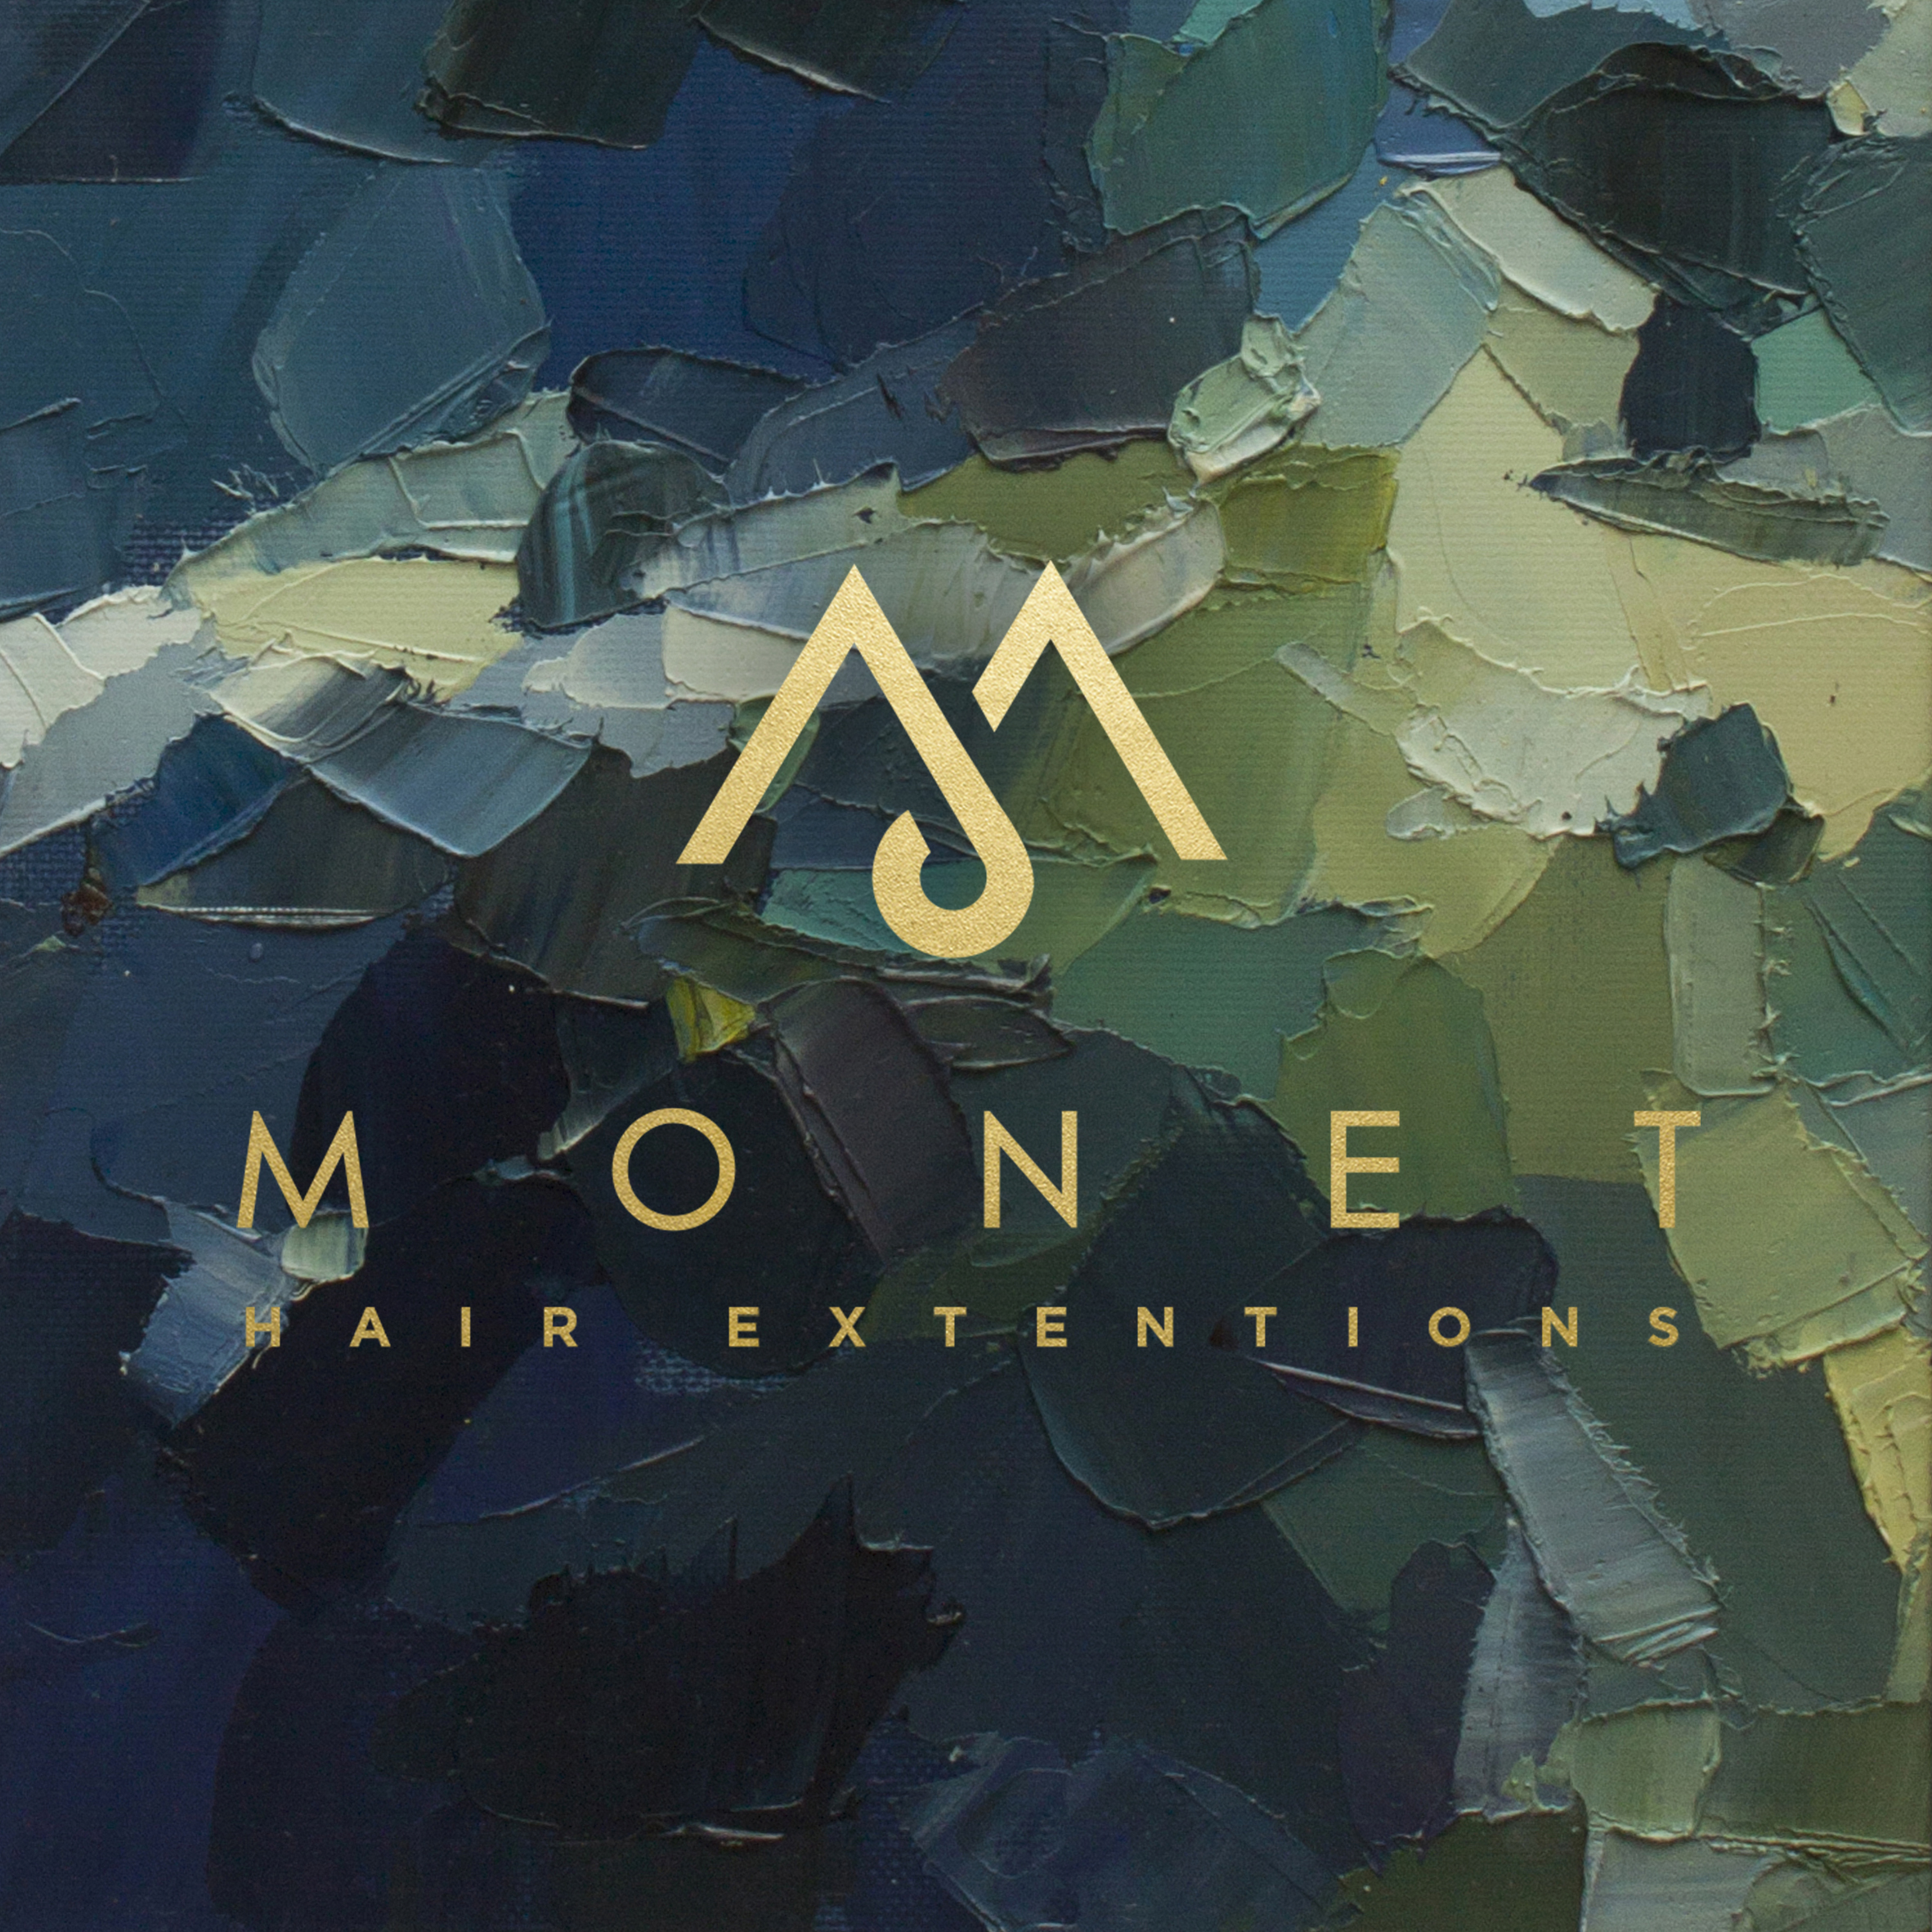 Monet hair extensions logo with paint background and gold lettering